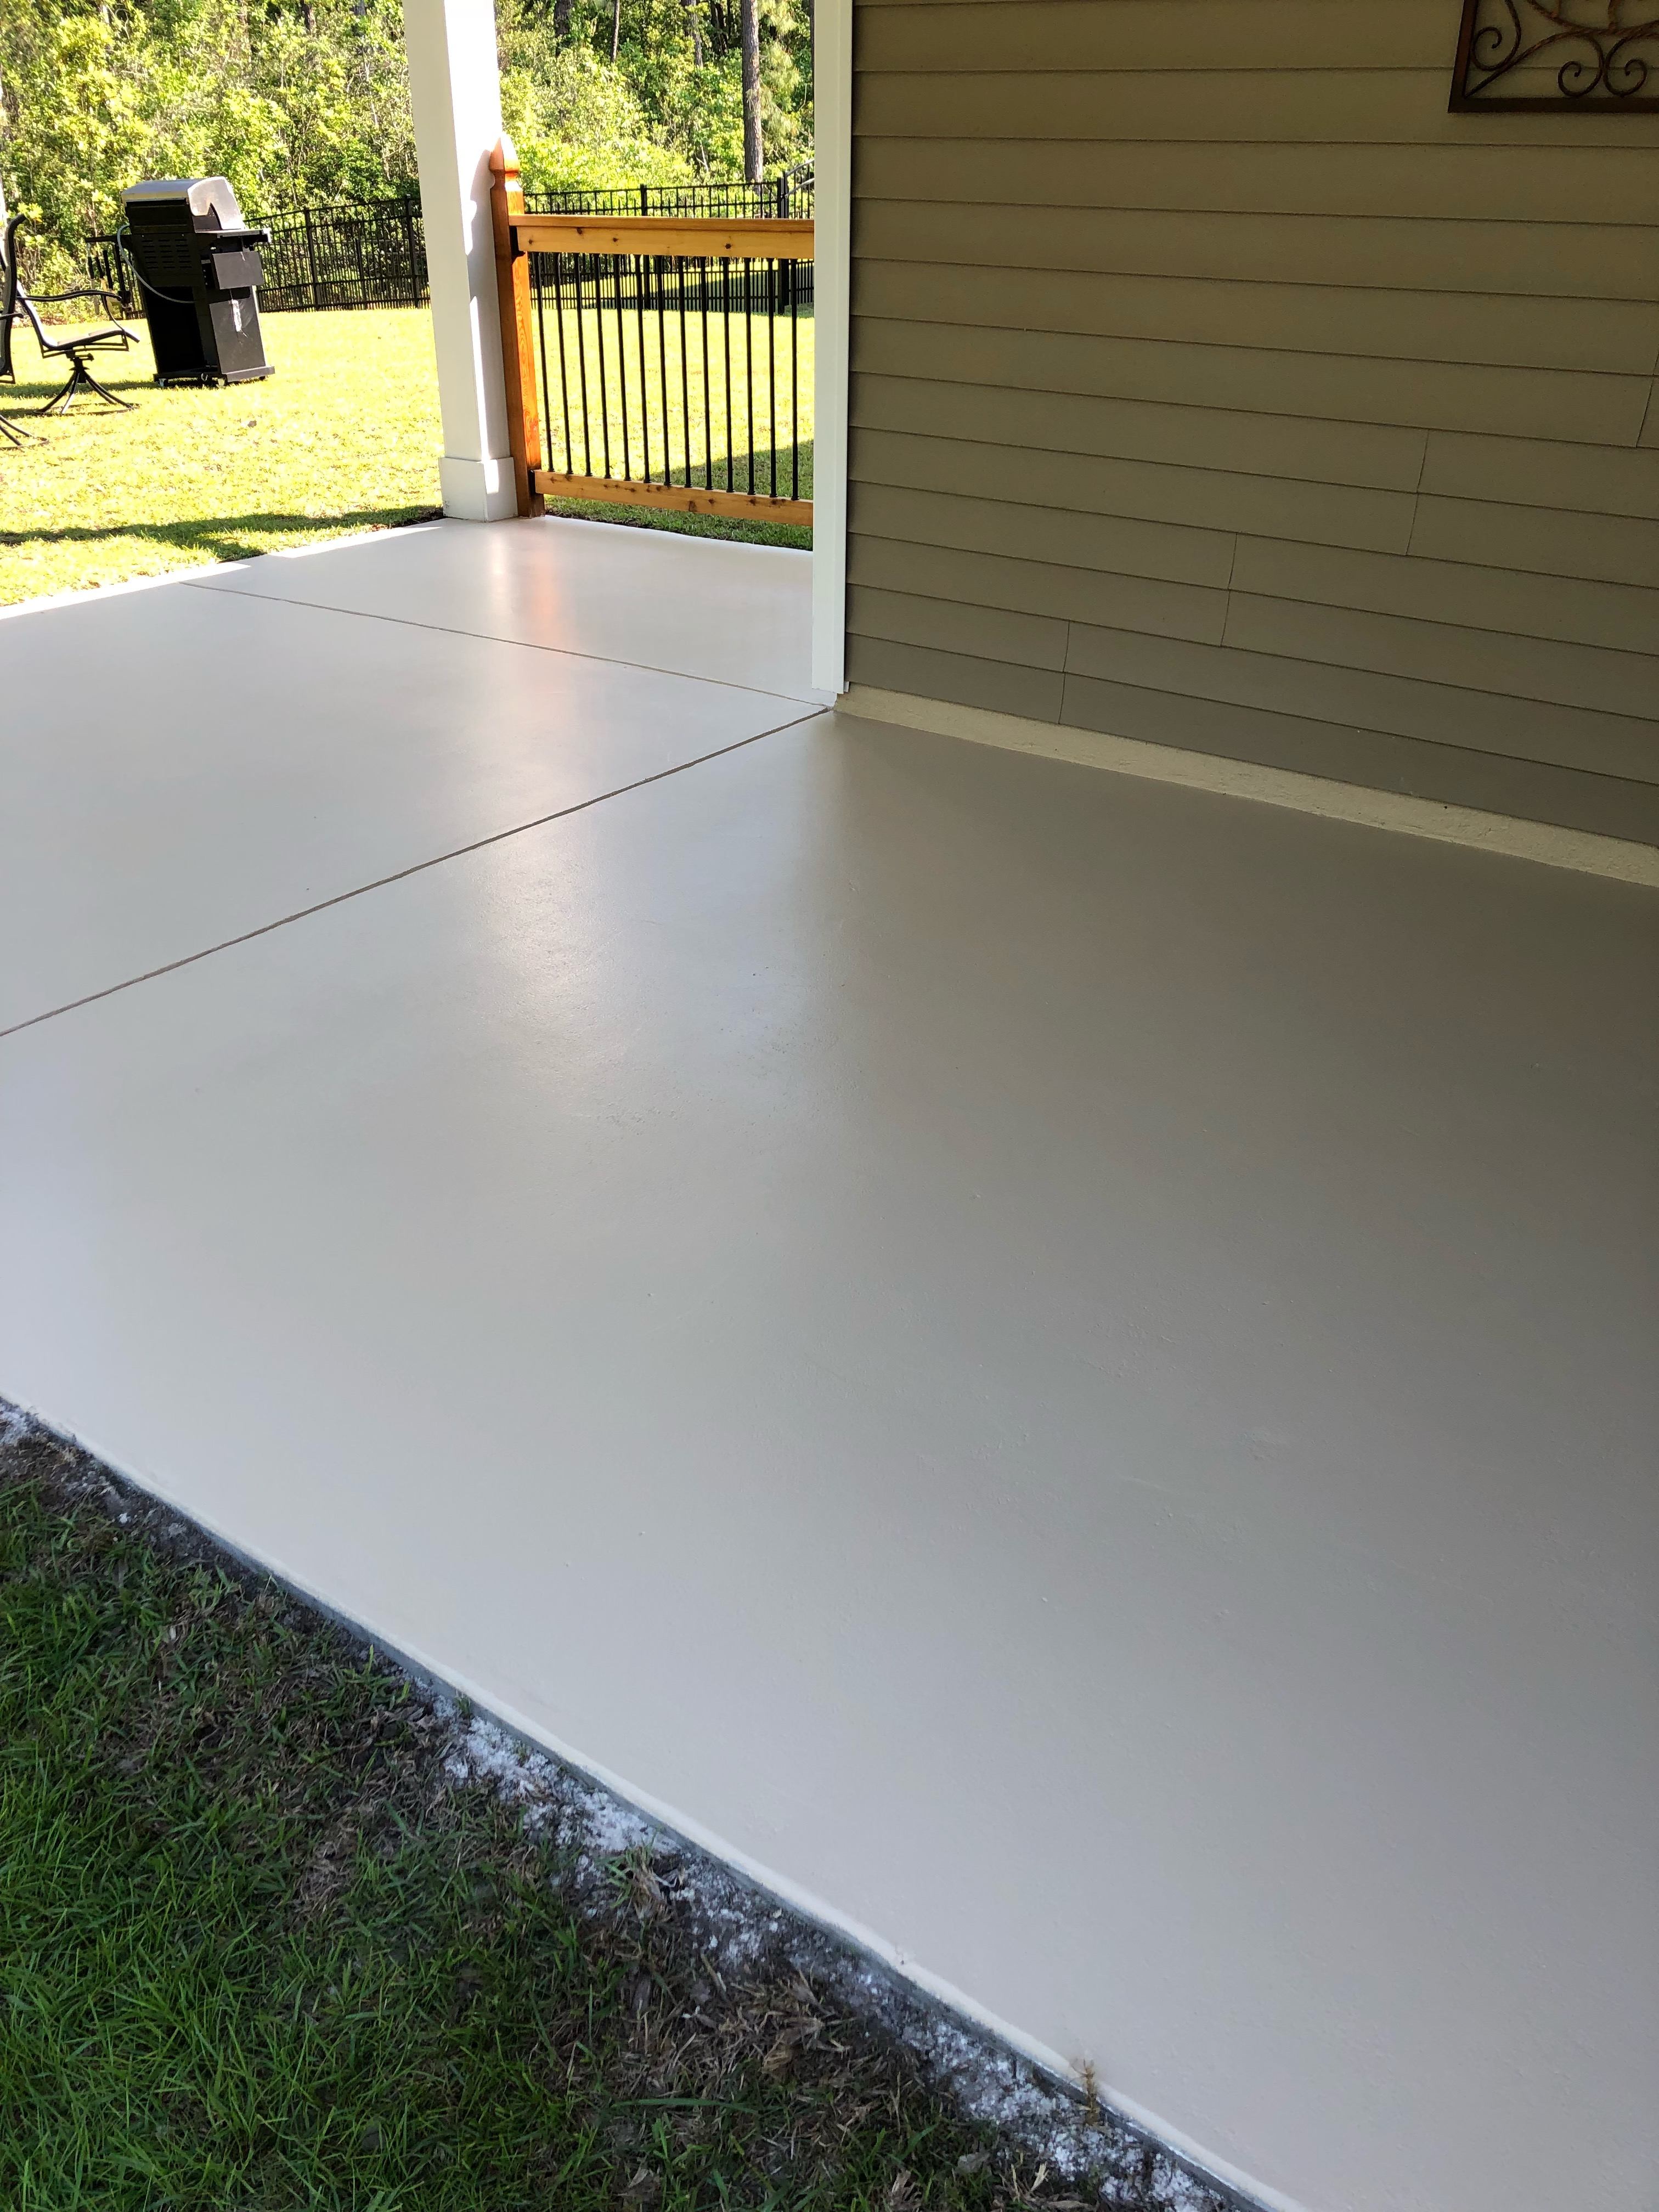 Epoxy Flooring On Porch 2 By OLT Painting